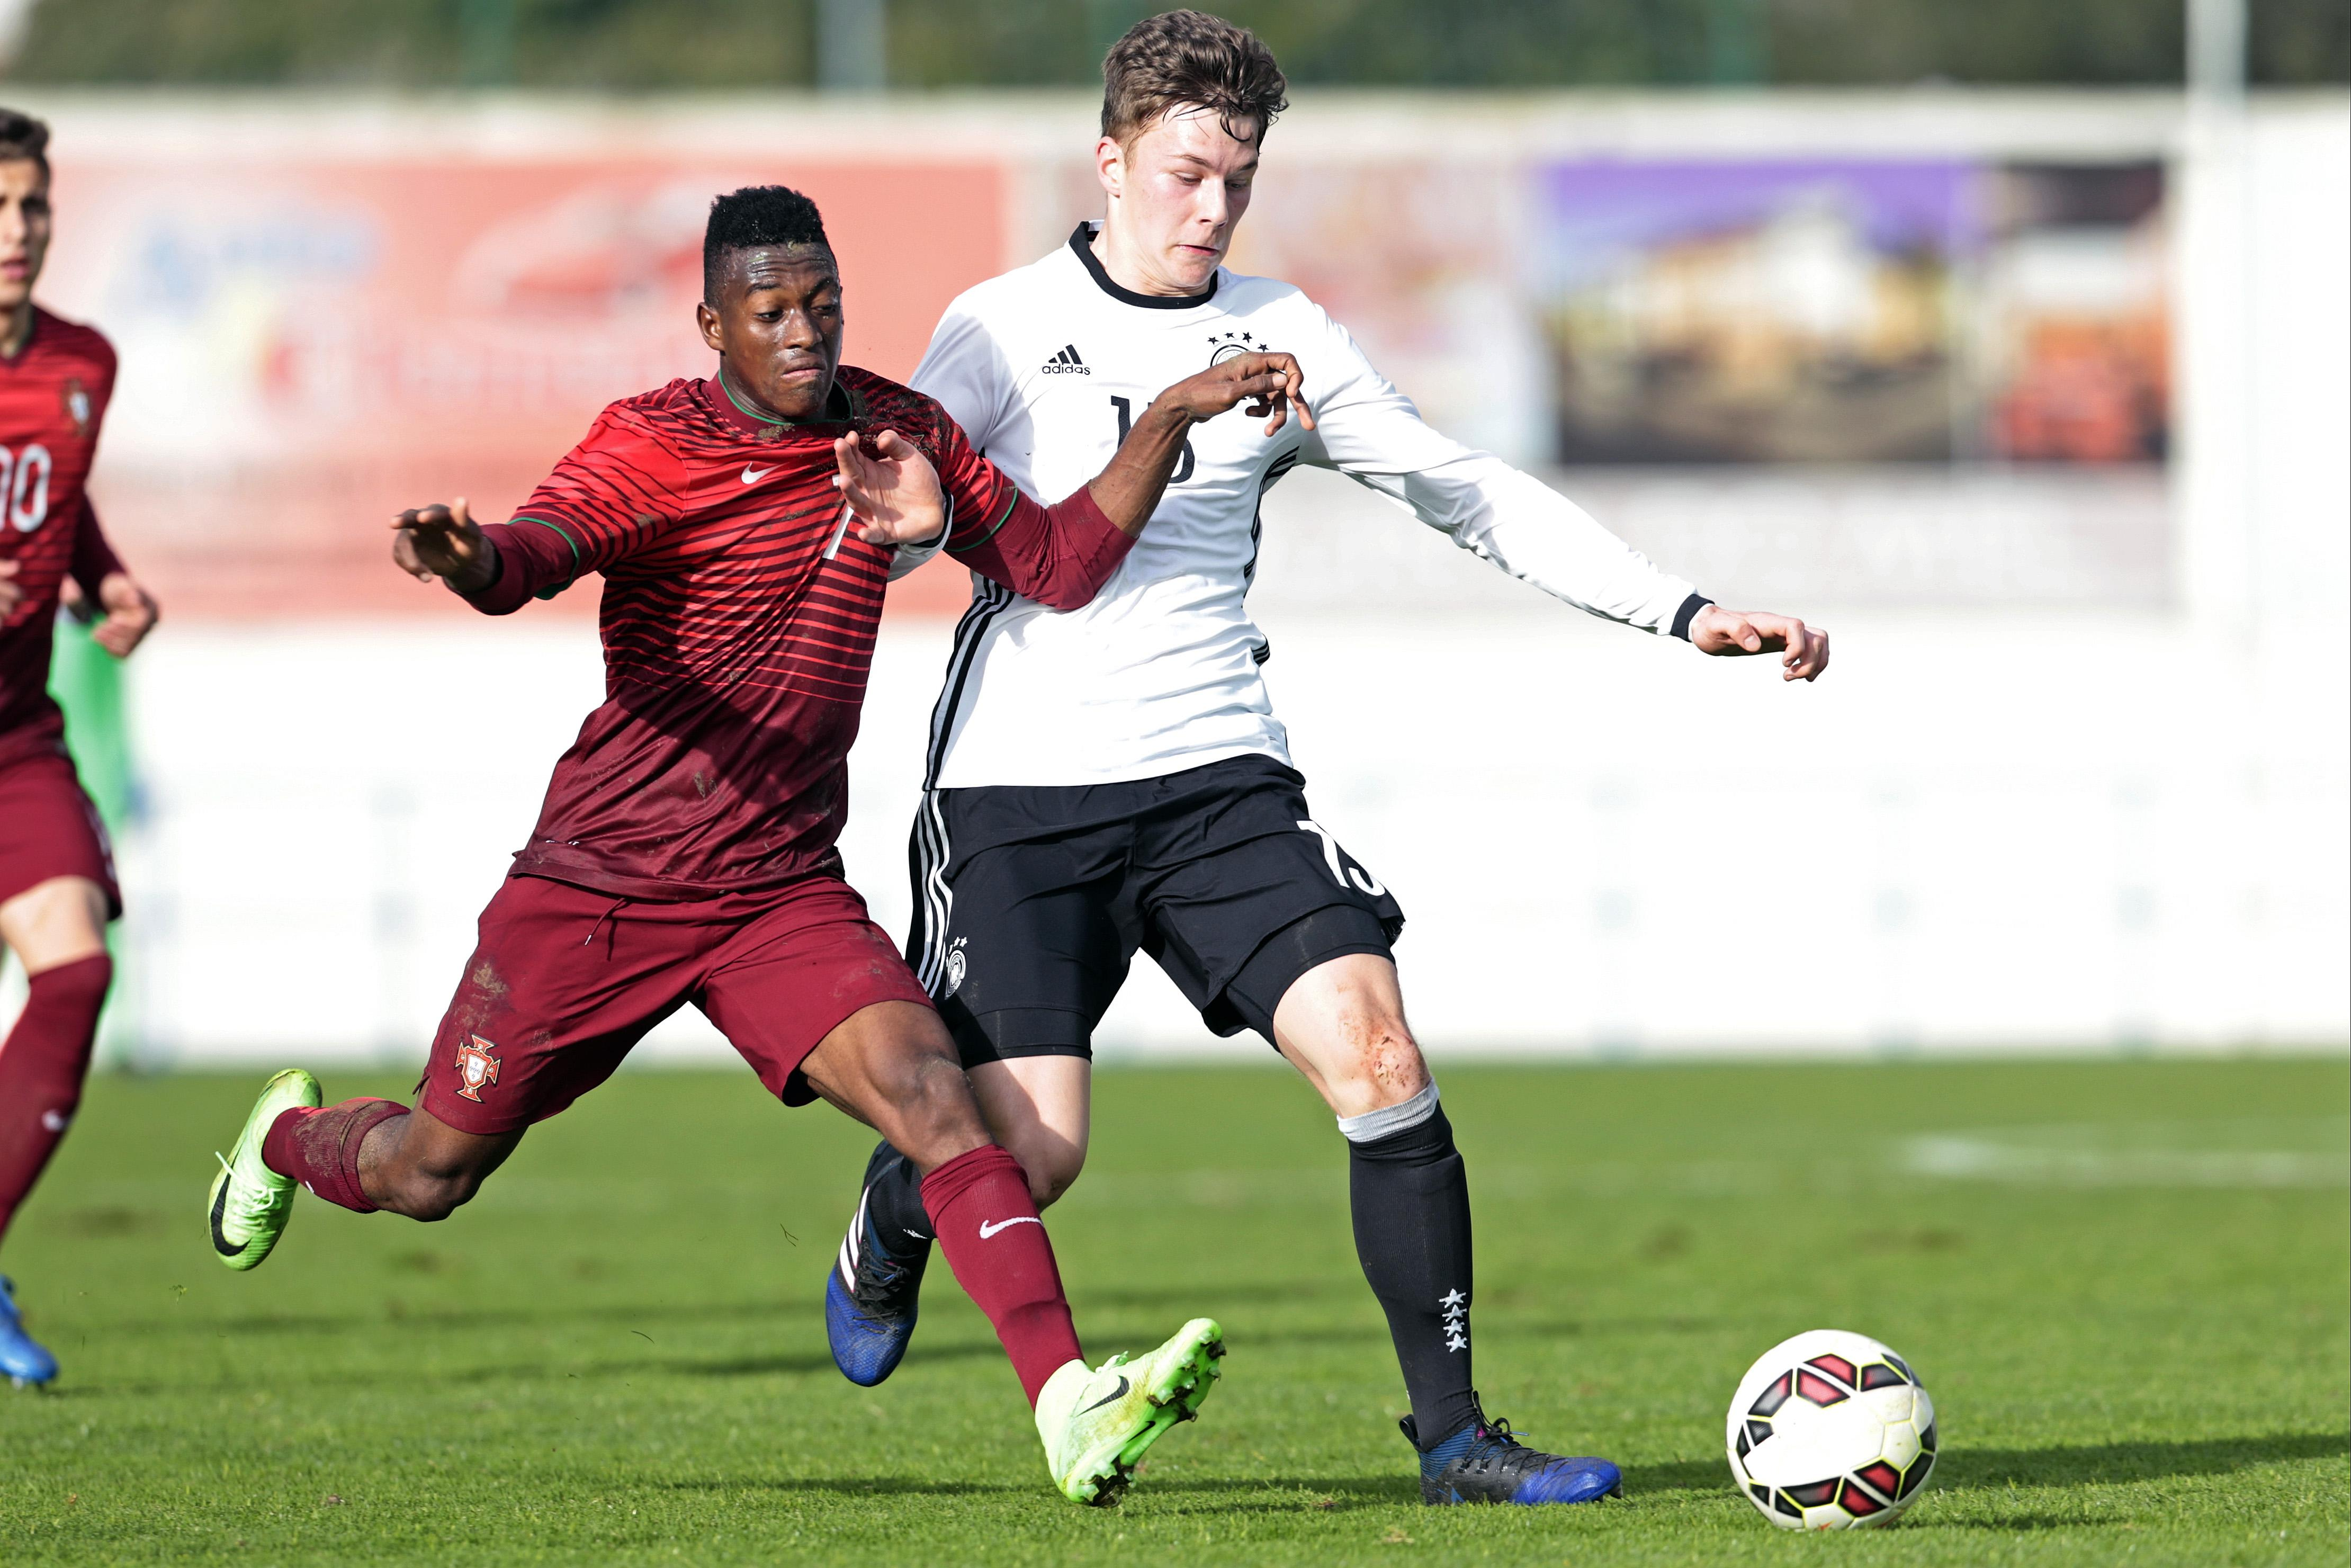 The youngster has been prolific for Portugal's Under-17s